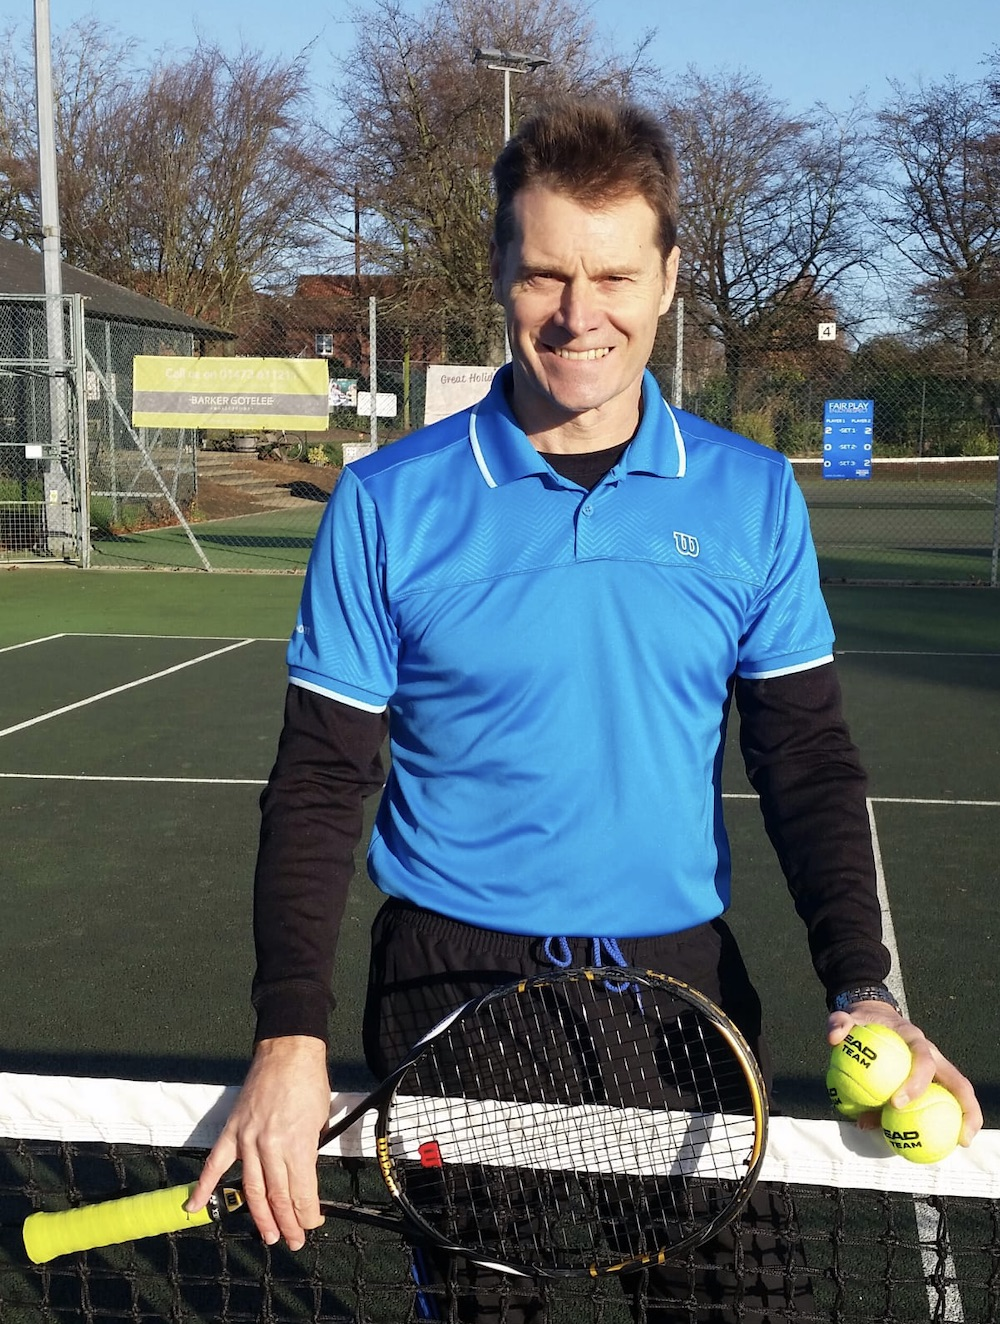 Rob Rickard part of the coaching team at Woodbridge Tennis Club in Suffolk